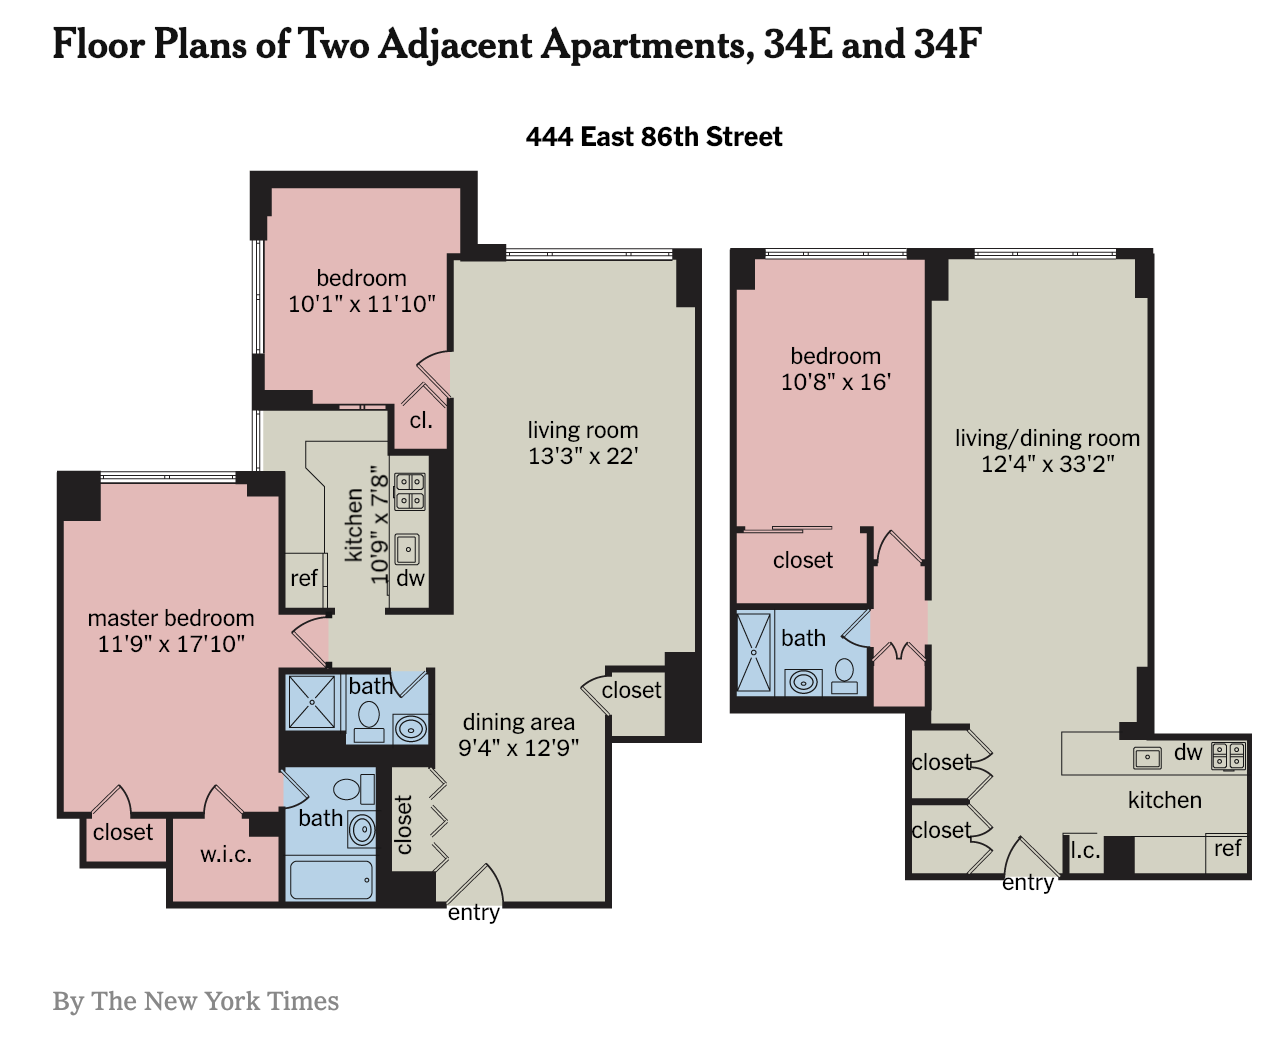 Housing Notes Miller Samuel Real Estate Appraisers Consultants For Example Look At This Crazy Spaghetti Monster Diagram I Believe The Goal Of Combined Layout Is To Provide Something That Doesnt Feel Like A Combination Two Or More Apartments Thats Hard Do